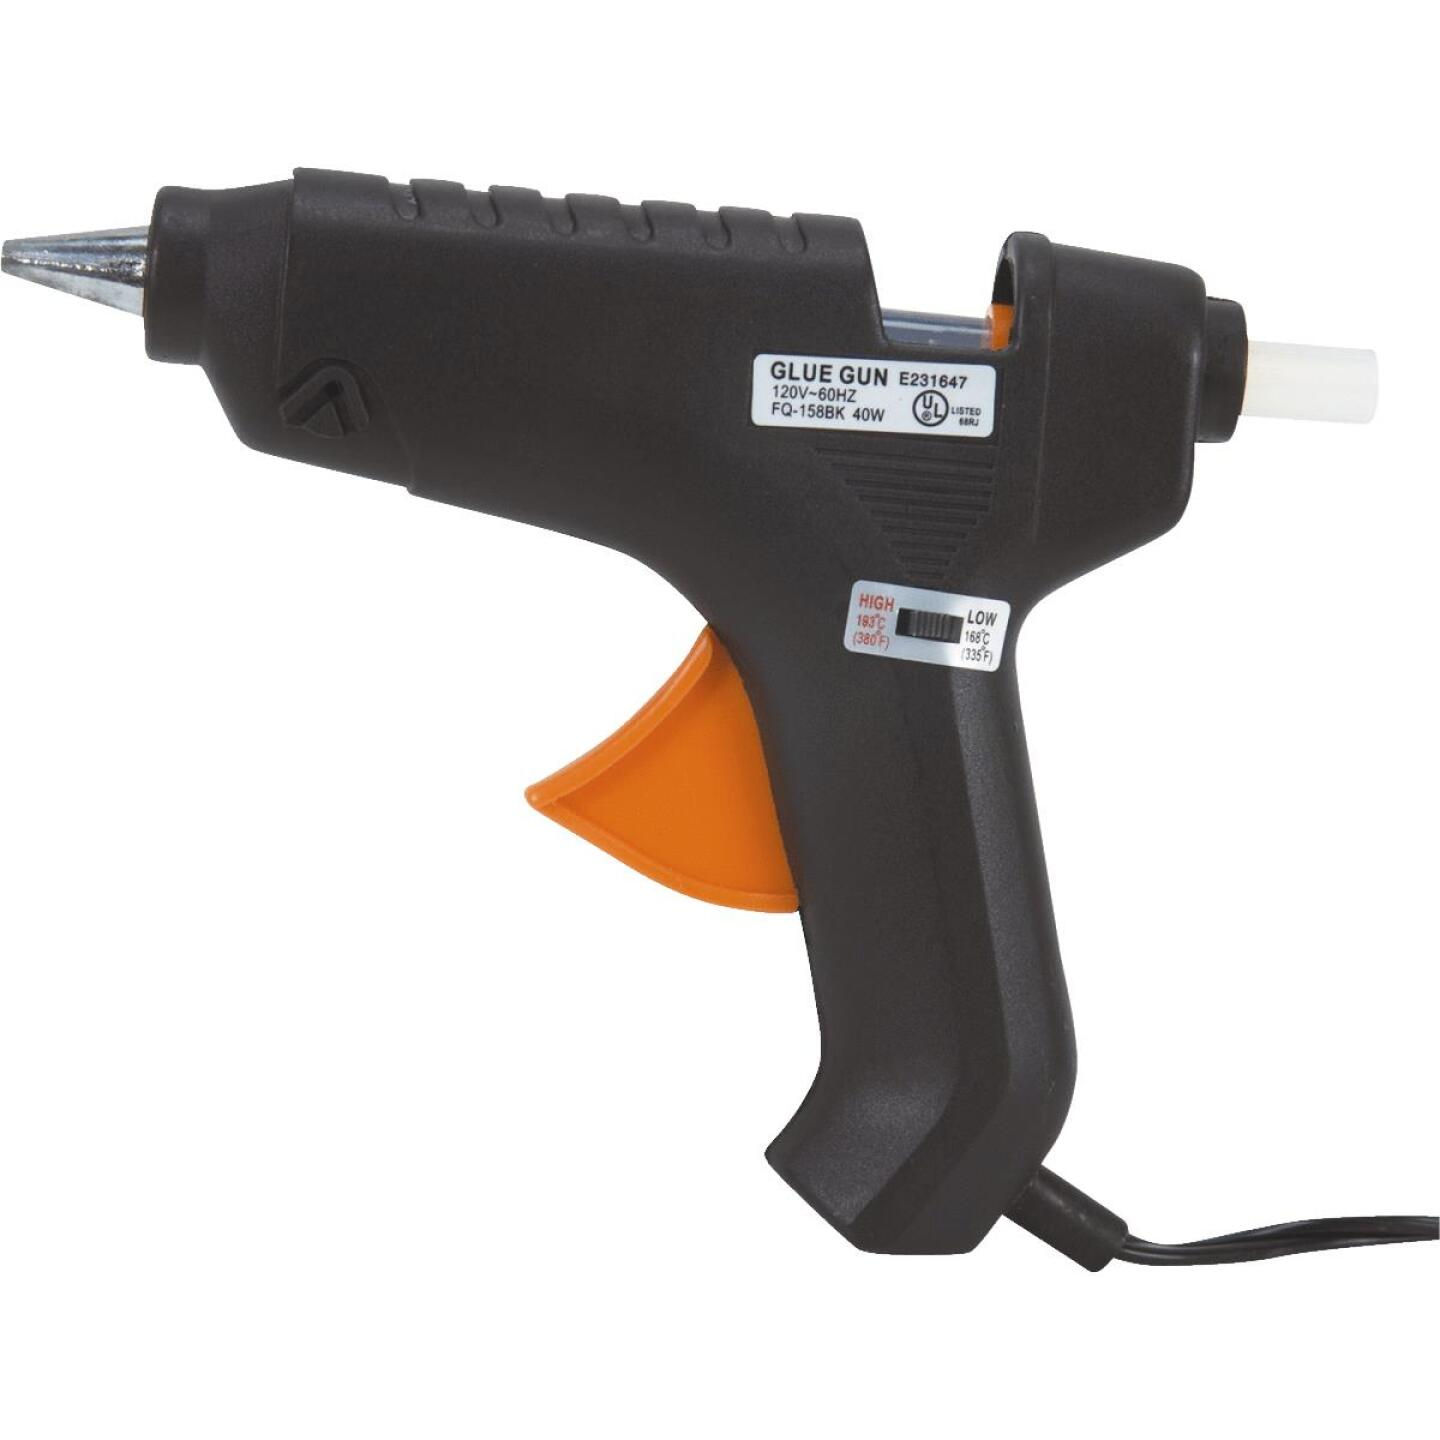 Do it Standard Dual-Temperature Glue Gun Image 1